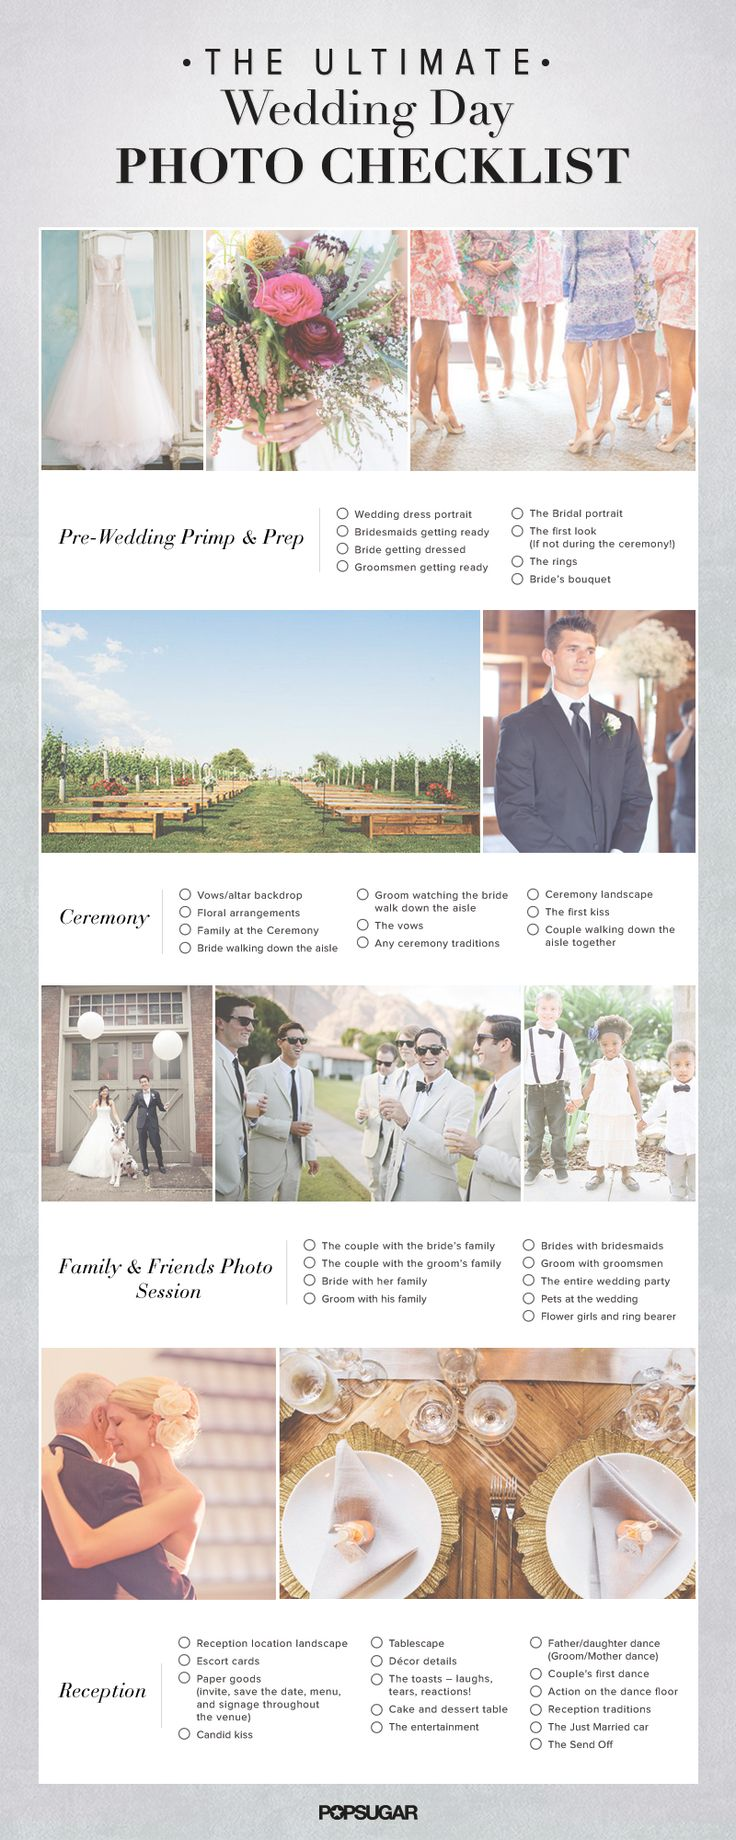 My advice - DEFINITELY make a list of photos that you want. Make sure the photographer understands...drill it! You won't regret it. Spend the money on a professional photographer...it will be money well spent. The Ultimate Wedding Day Photo Checklist — hand this to your photographer!